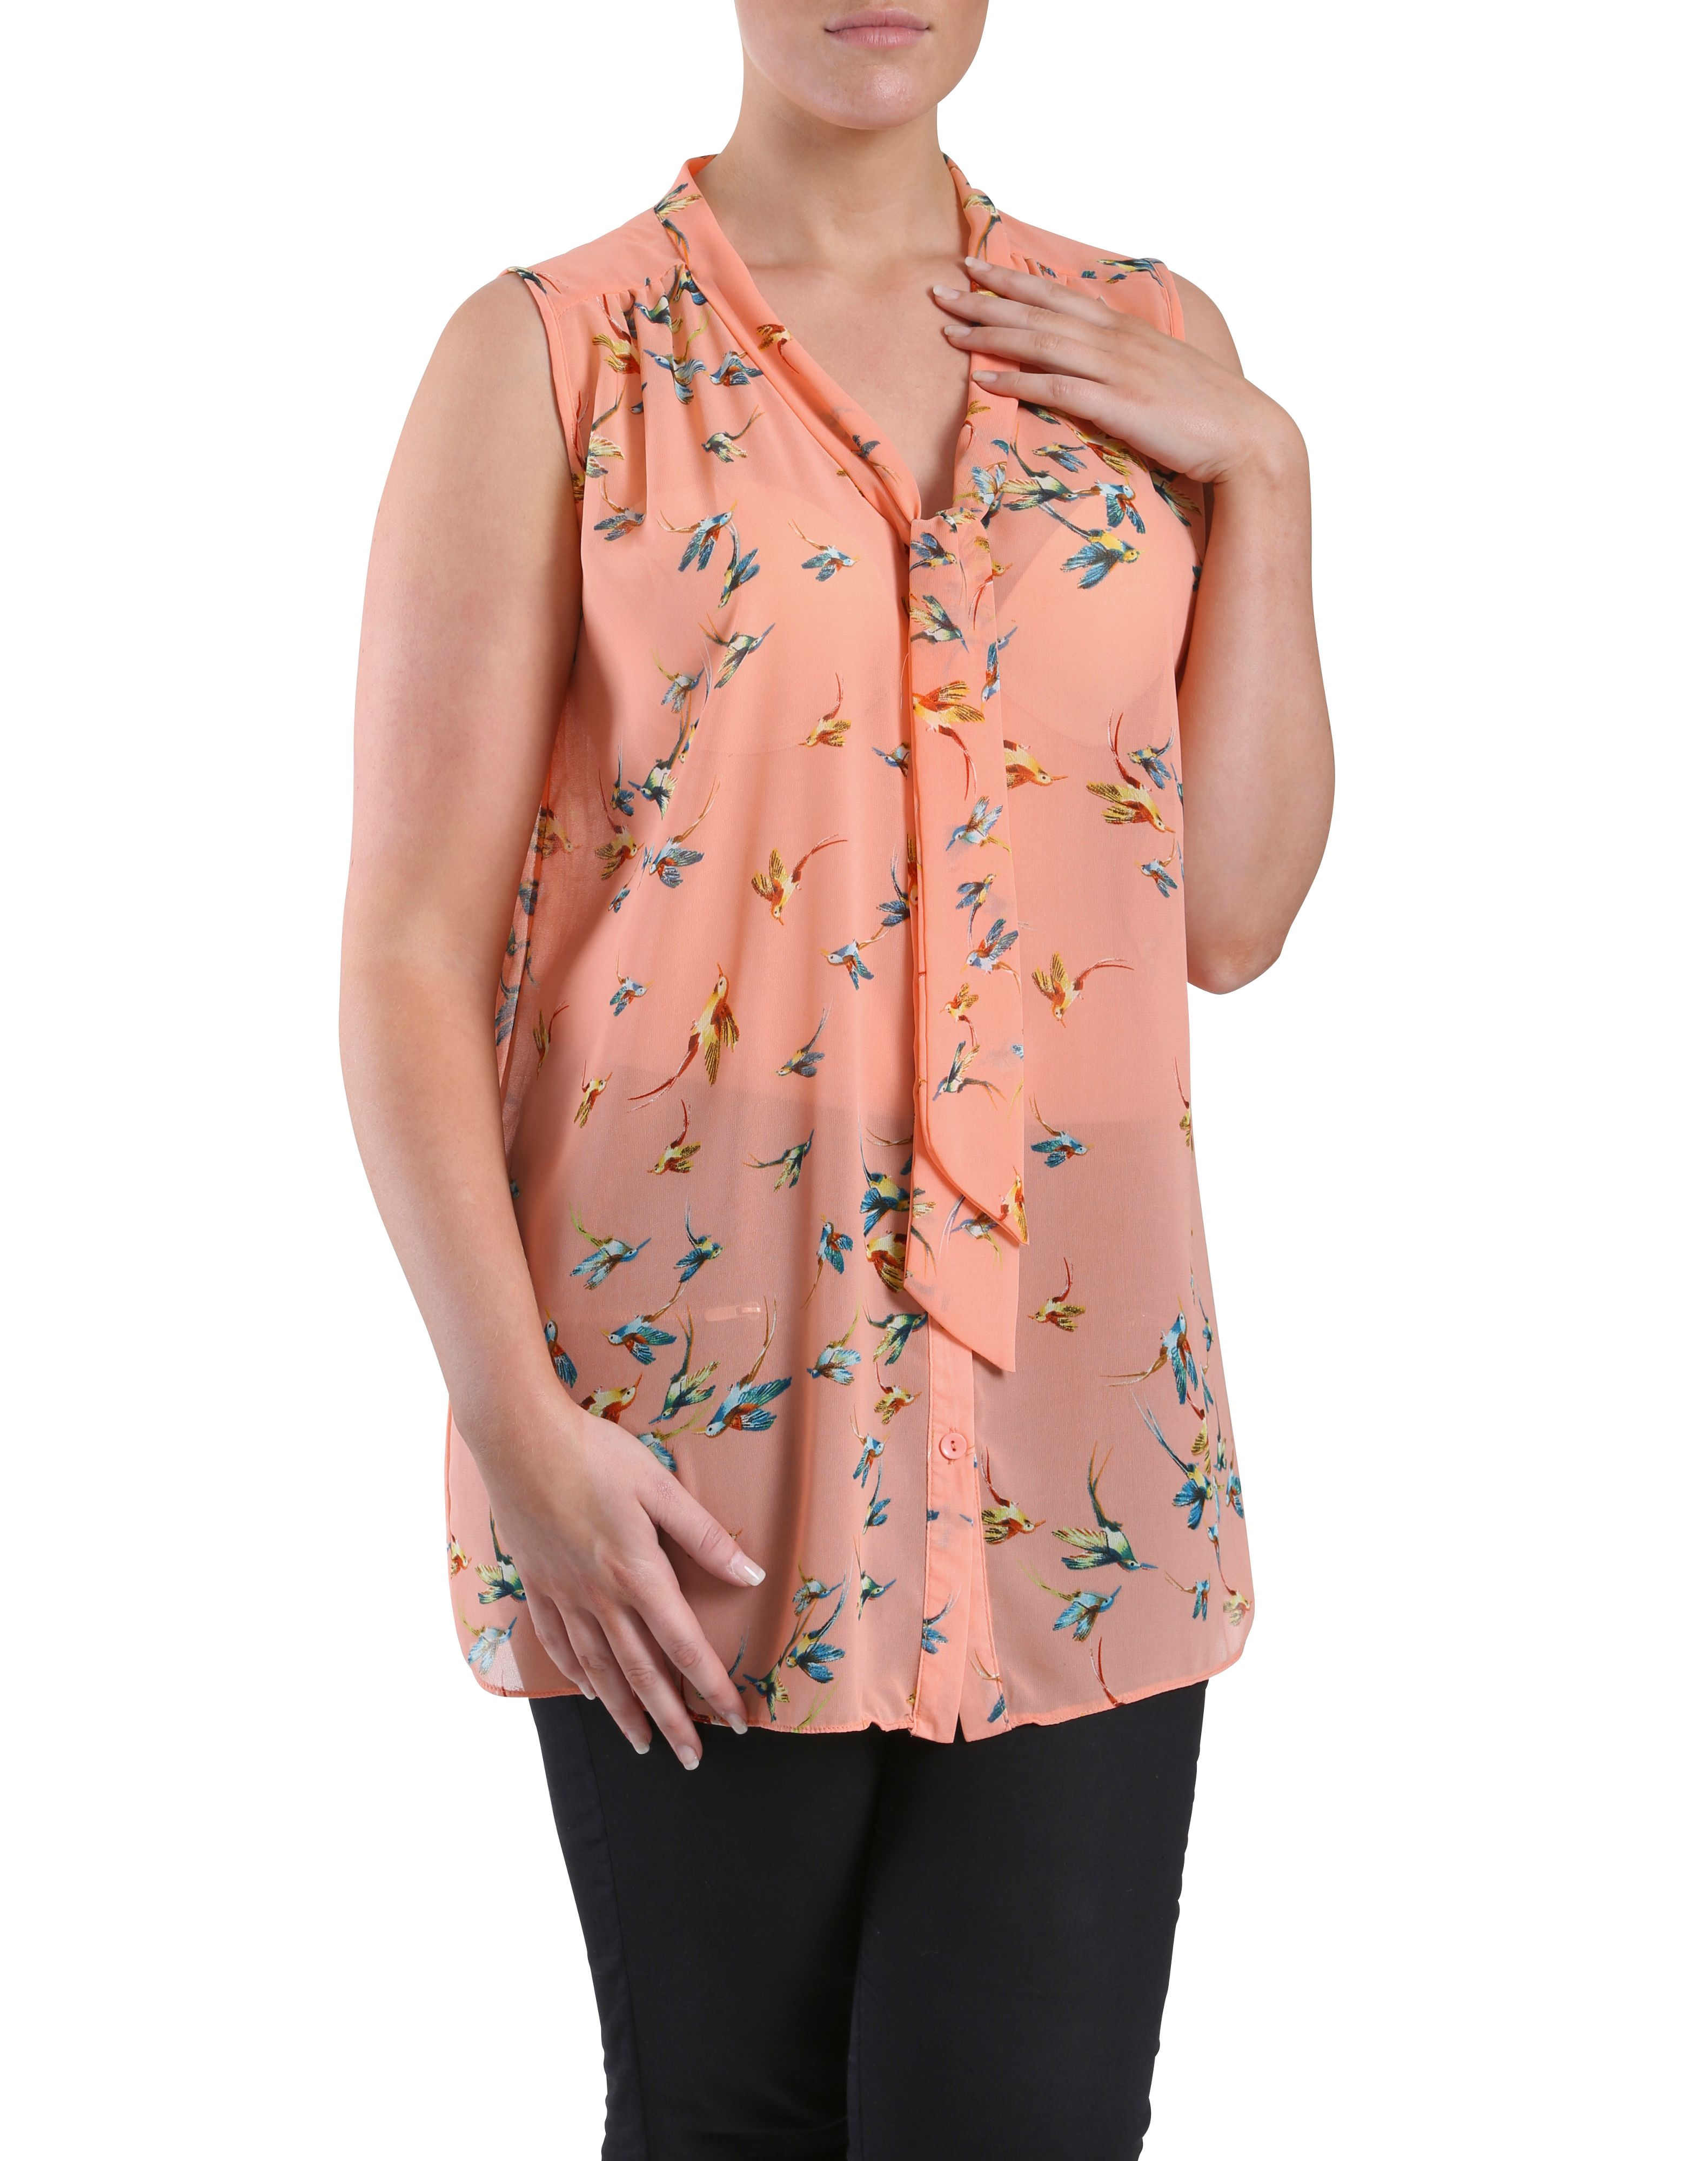 Hummingbird printed top